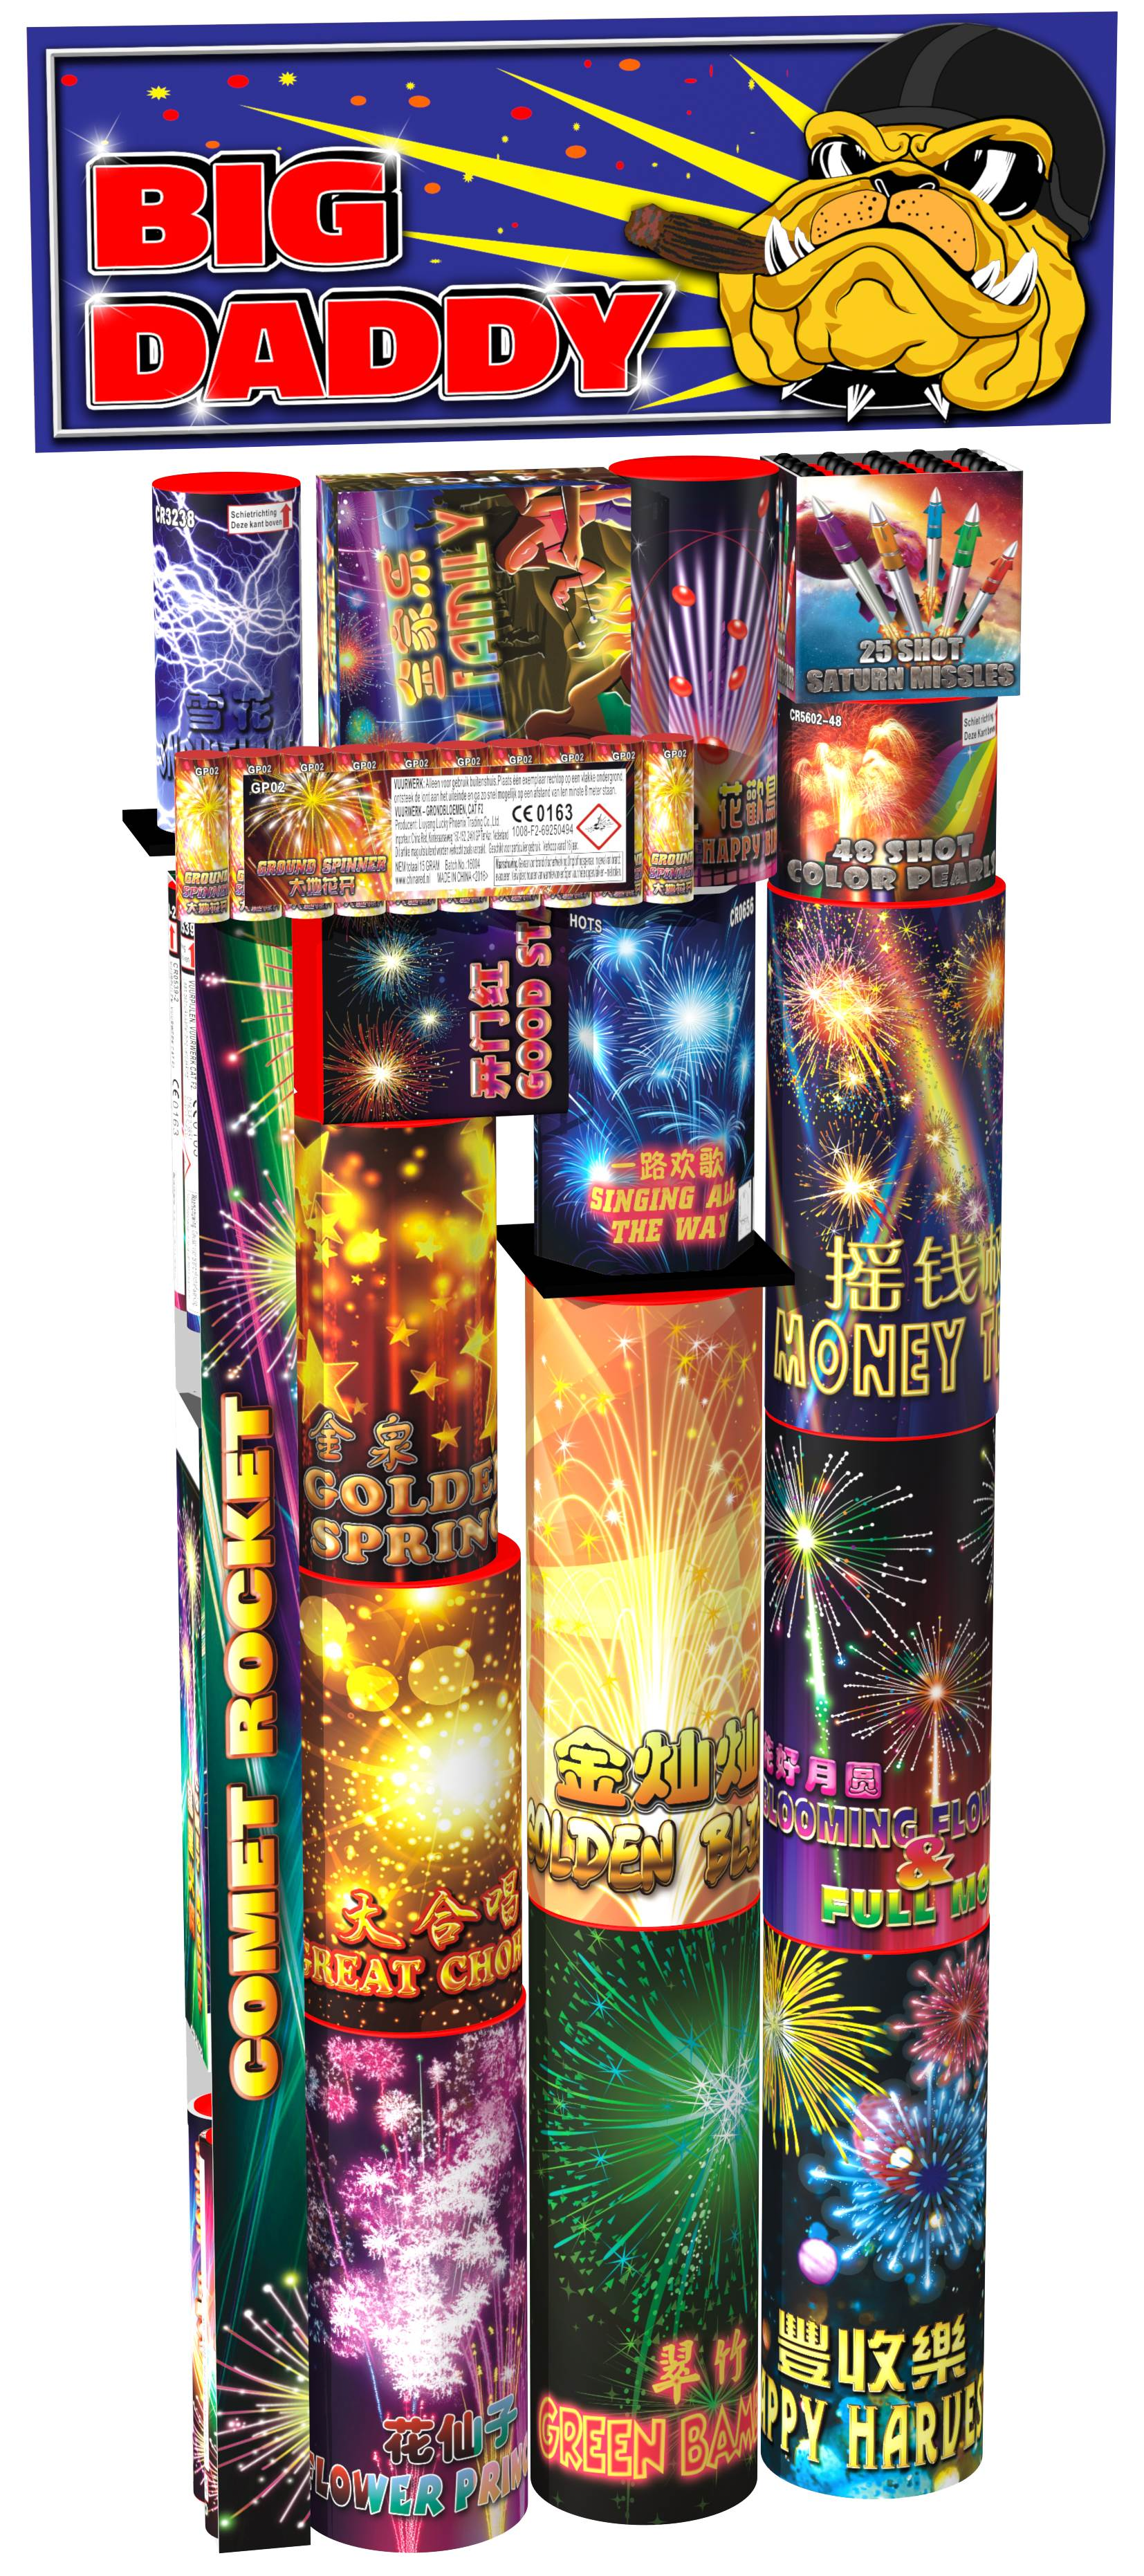 Big daddy ky7705 china red super grote zak vuurwerk for Intratuin lochem